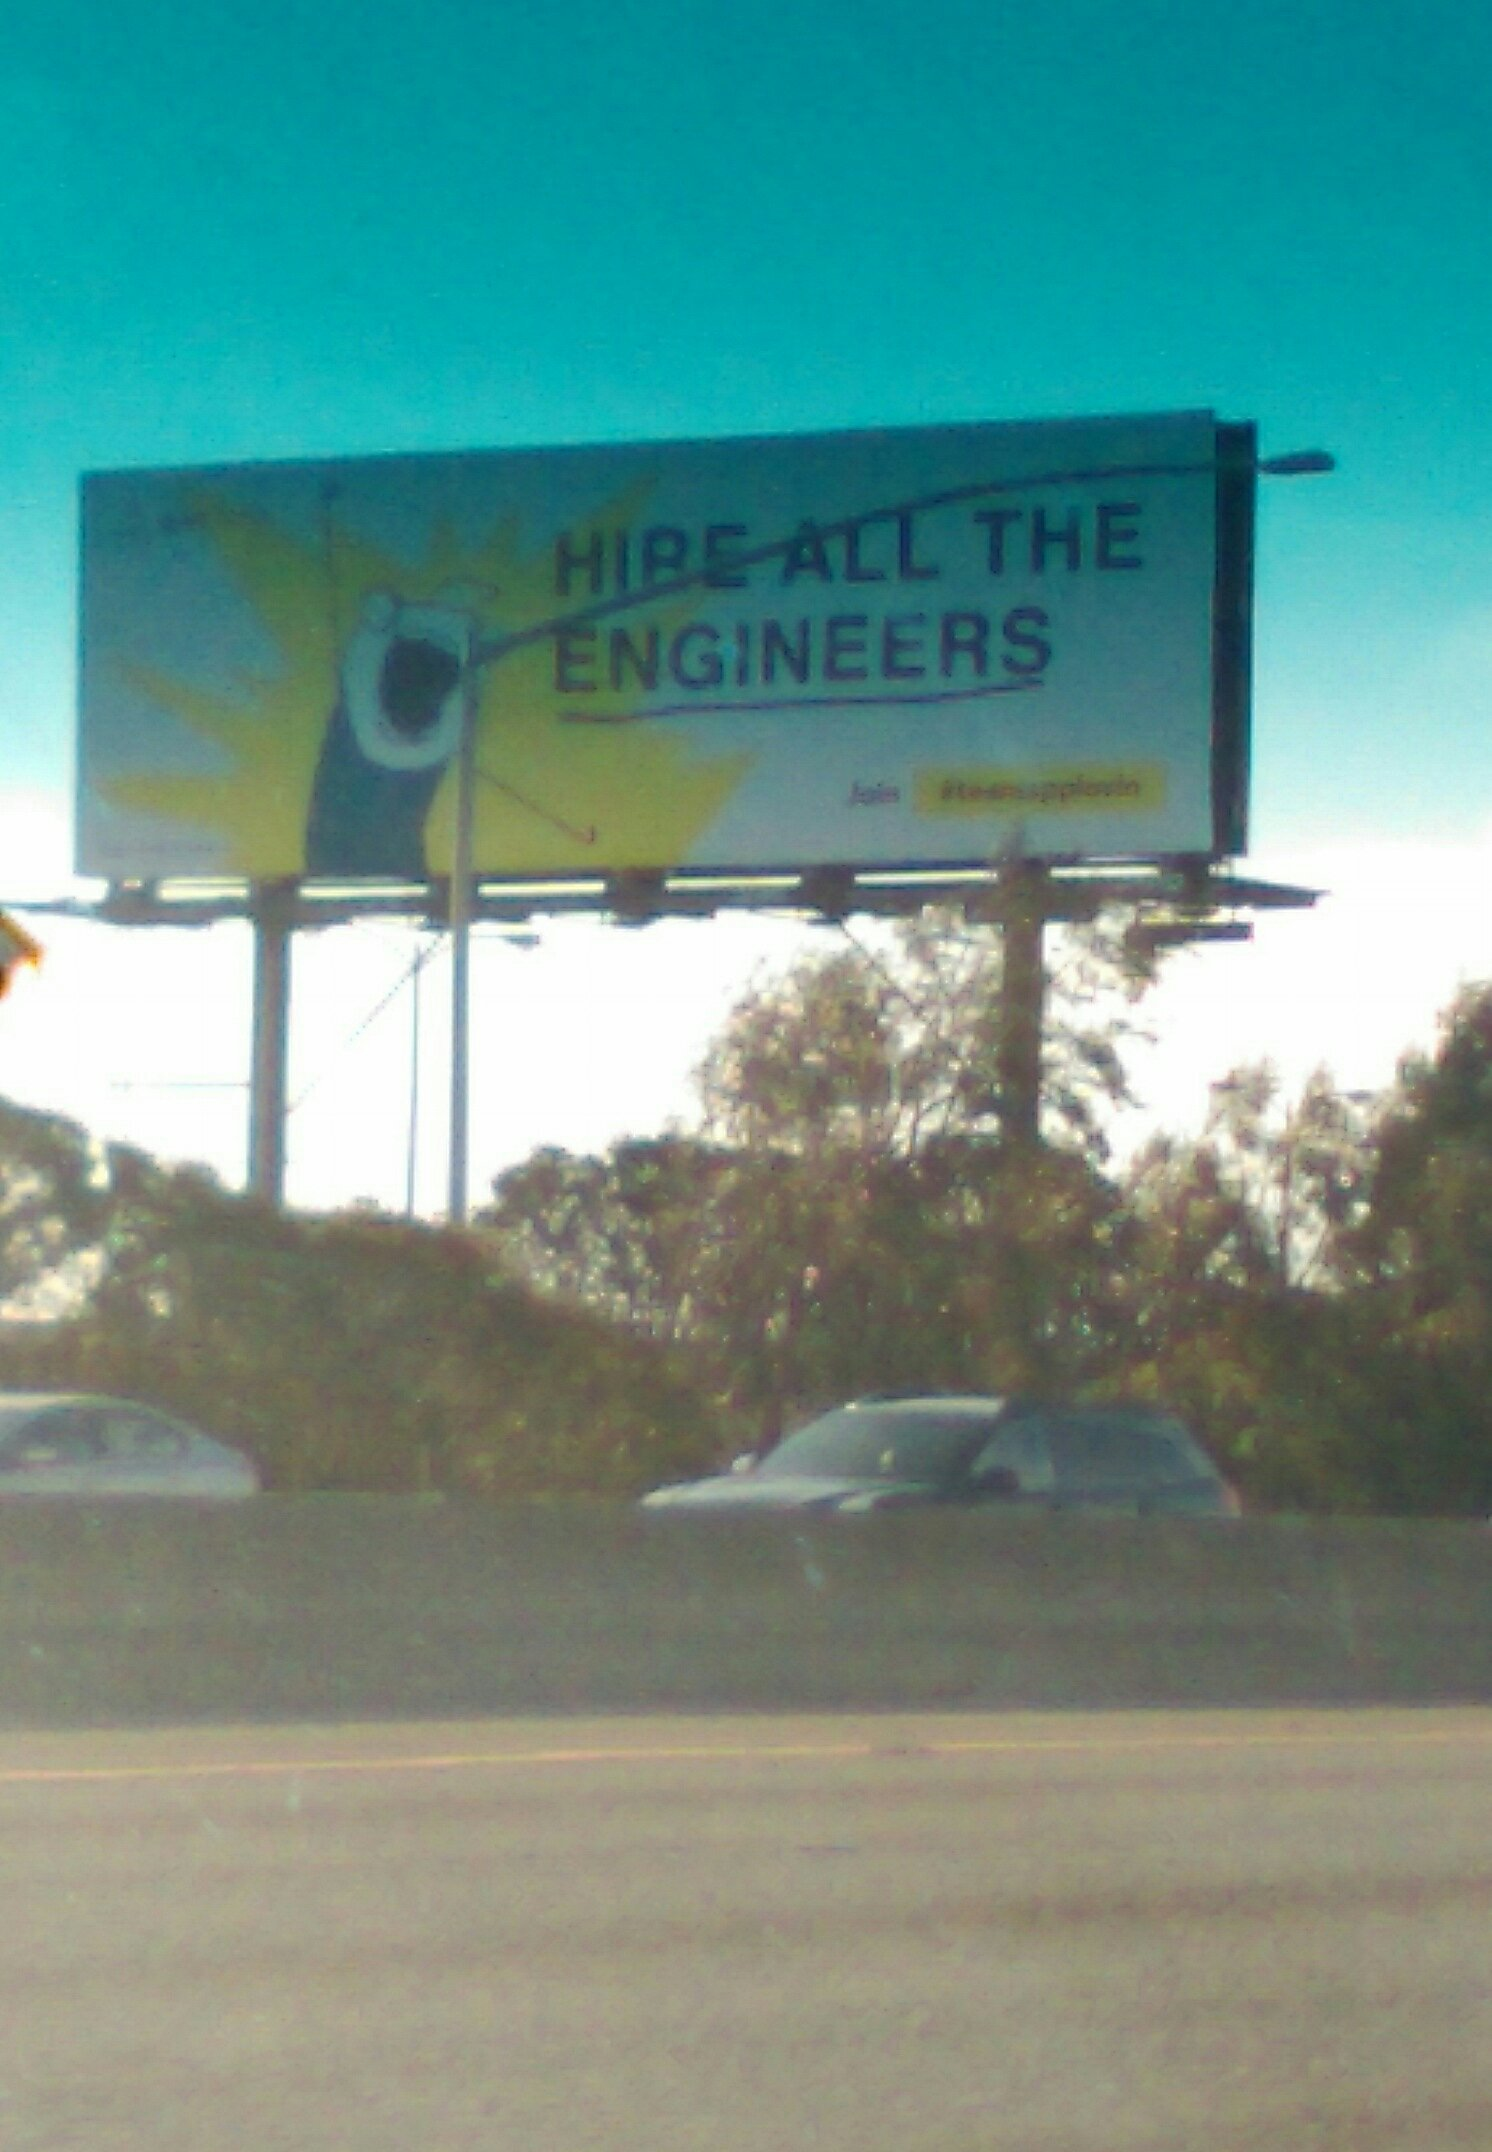 Saw this awesome bill board driving home - meme